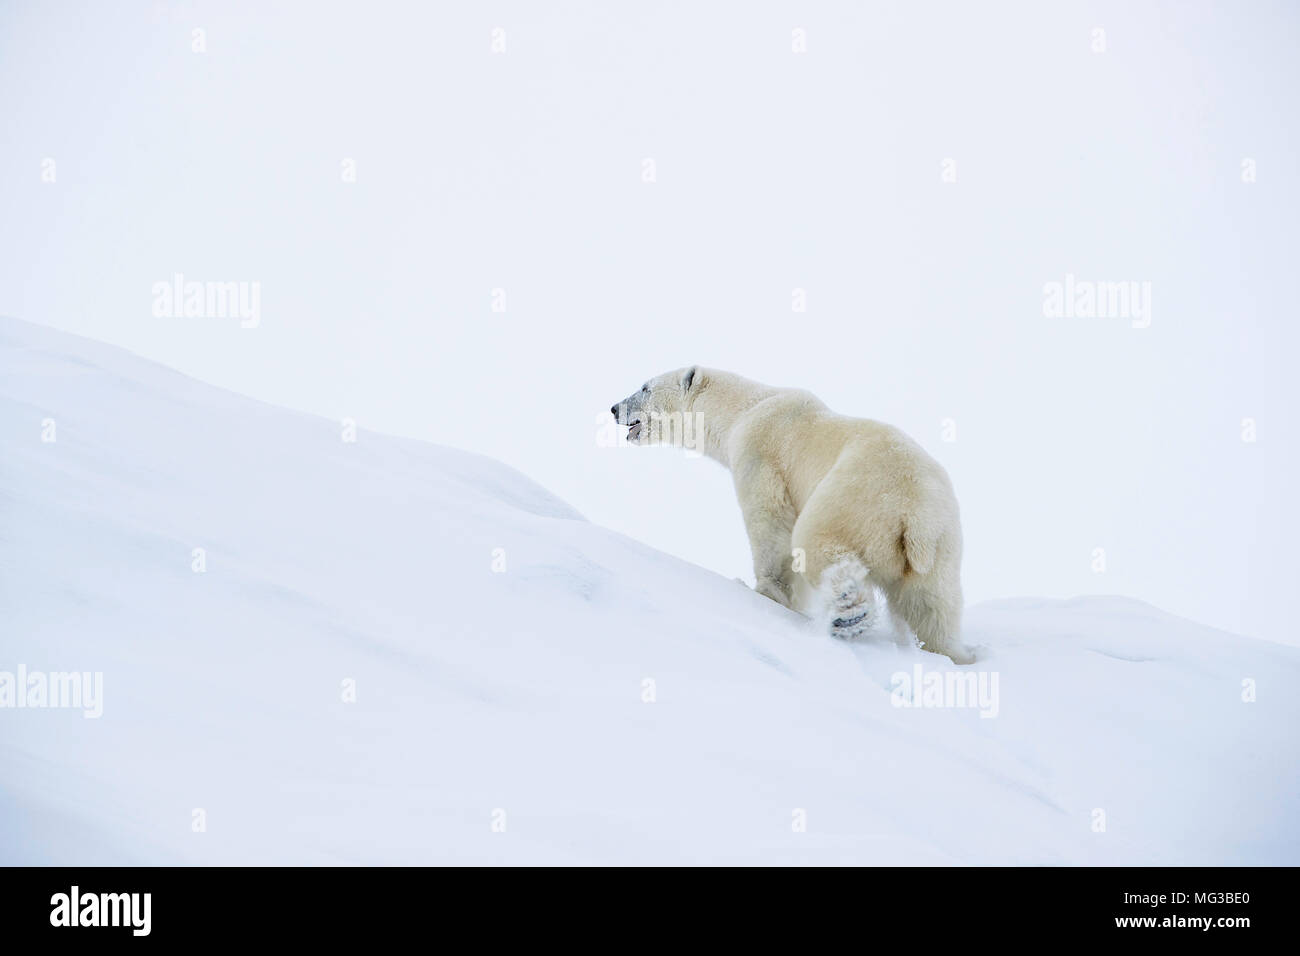 Solitary large male polar bear on an island in the frozen fjords of Baffin Islans, Arctic Cananda - Stock Image